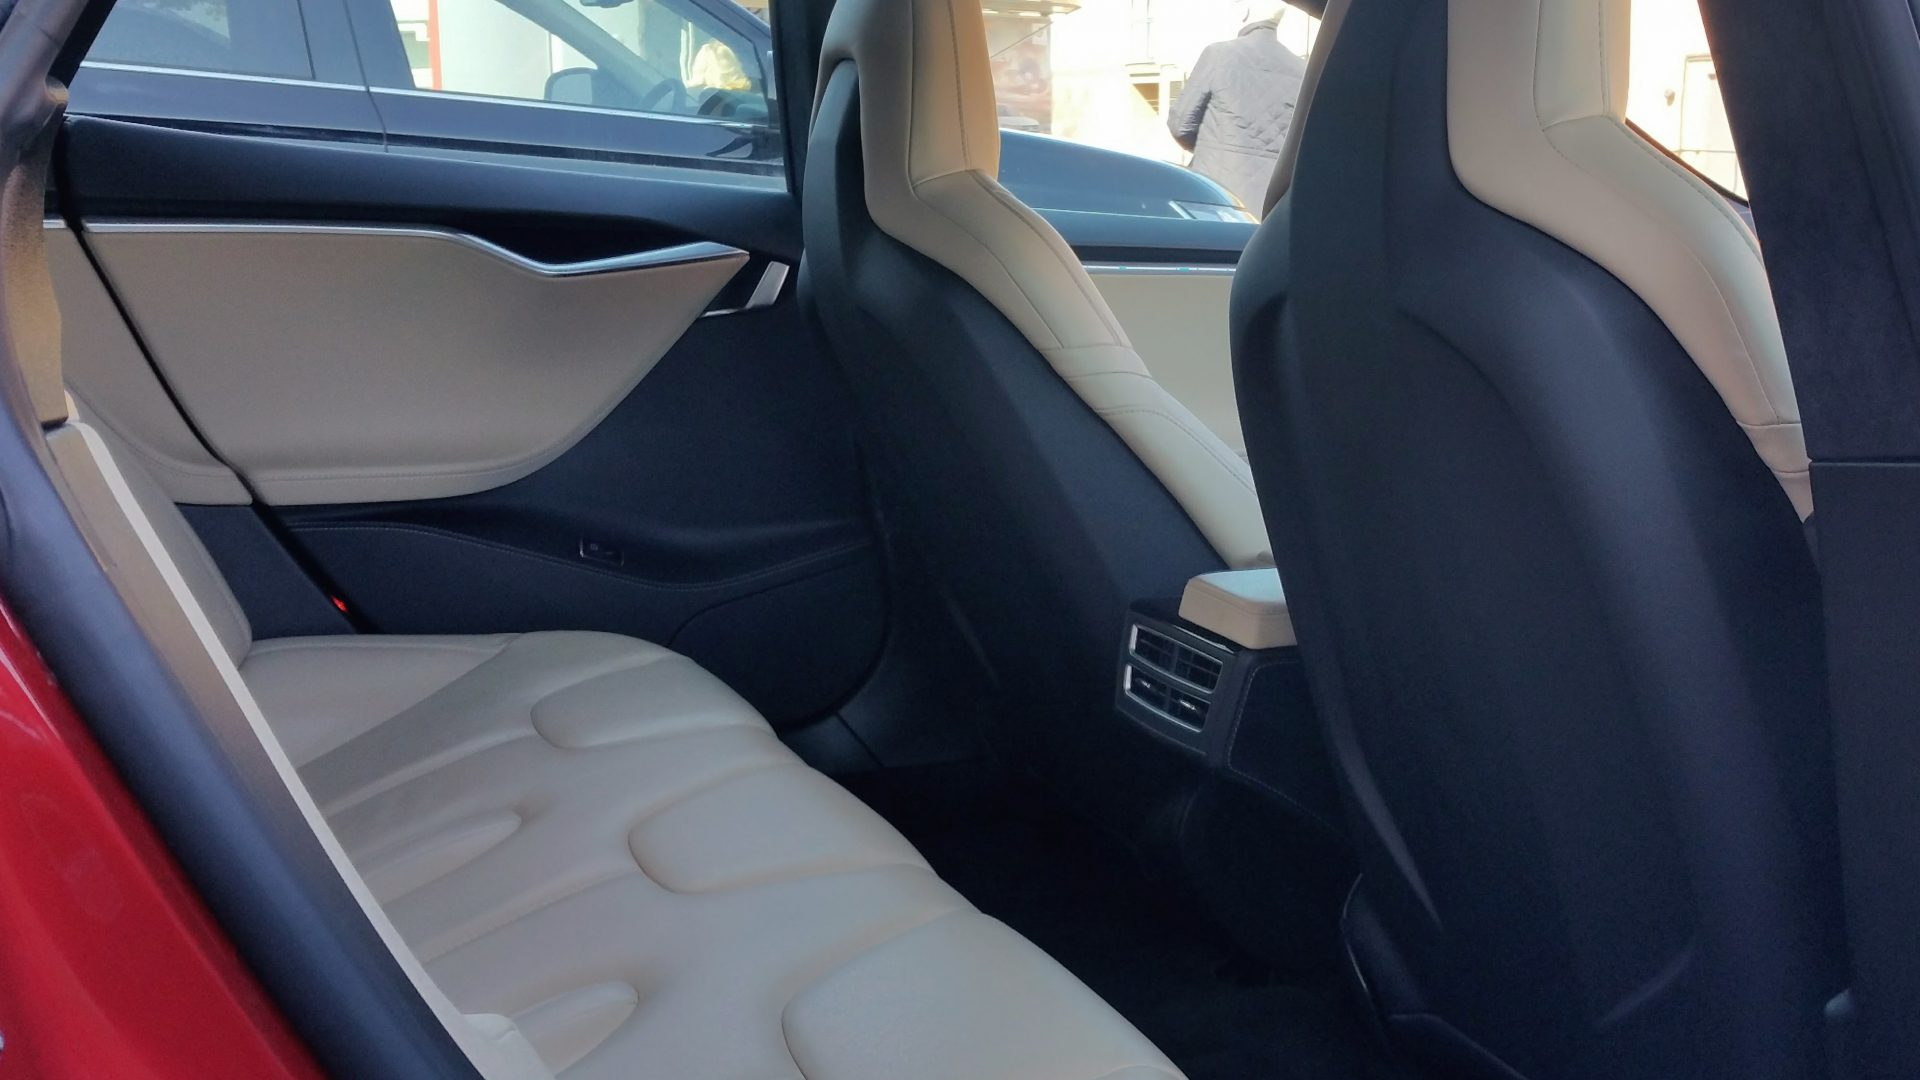 Tesla Model S Rear Seat Interior | Photo Credit Jack Matthews McMotorsCars.Blogspot.co.uk